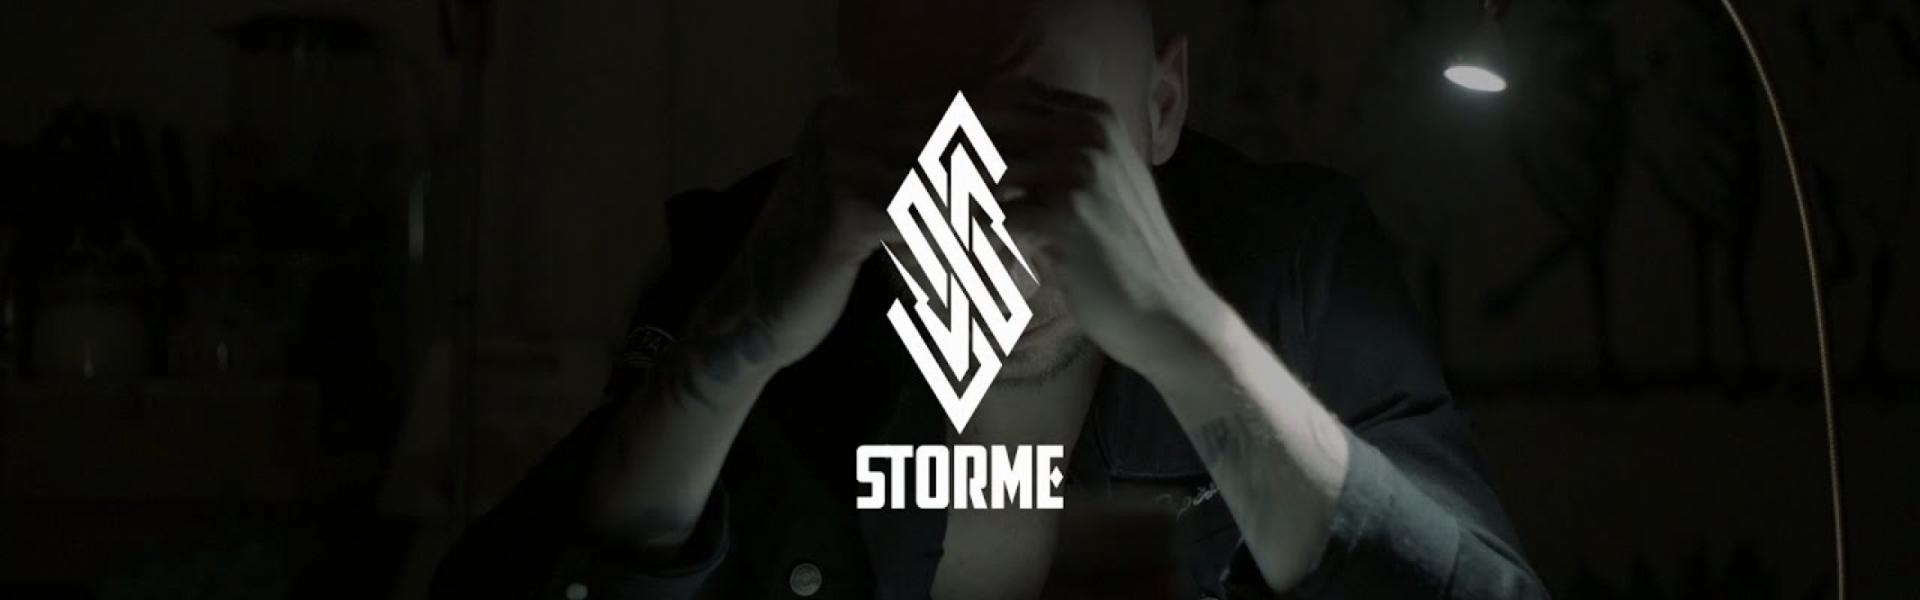 Embedded thumbnail for Storme - Morgen Is Nooit Zeker